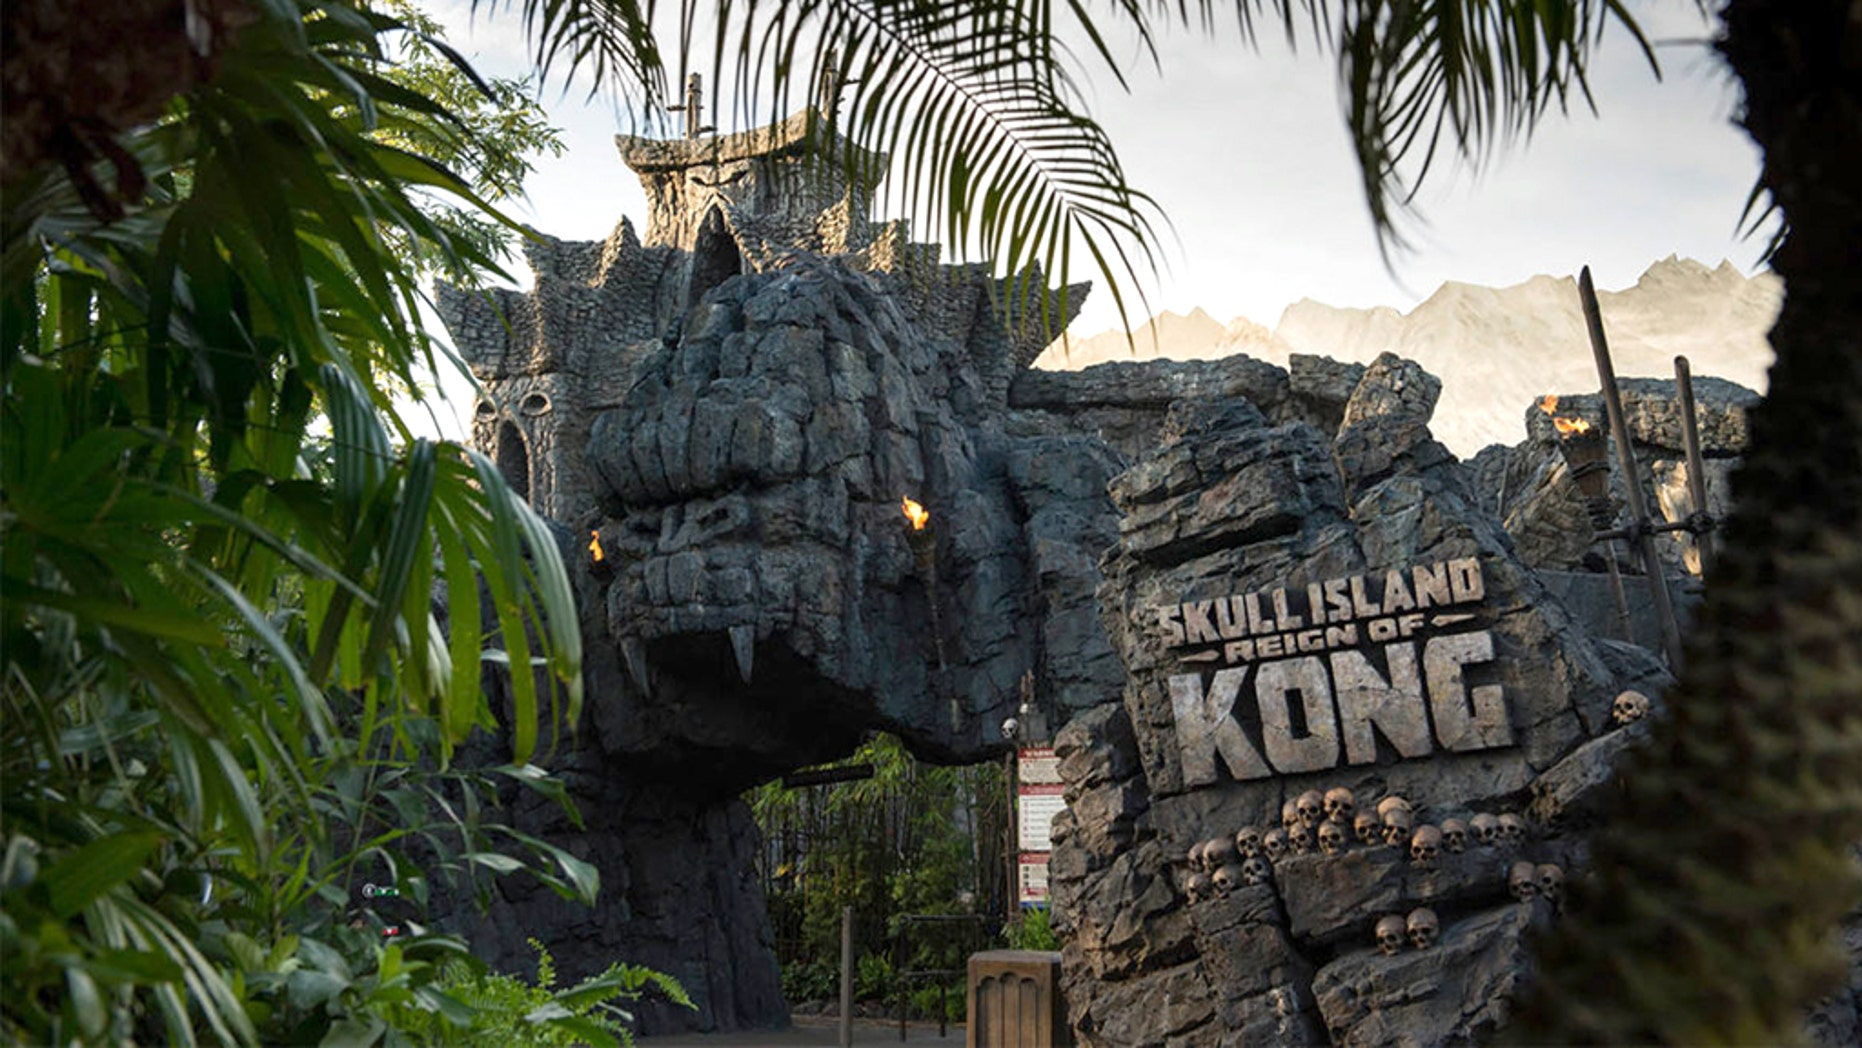 A new lawsuit claims a man collapsed and died after riding Universal Studio's Skull Island: Reign of Kong in December 2016.